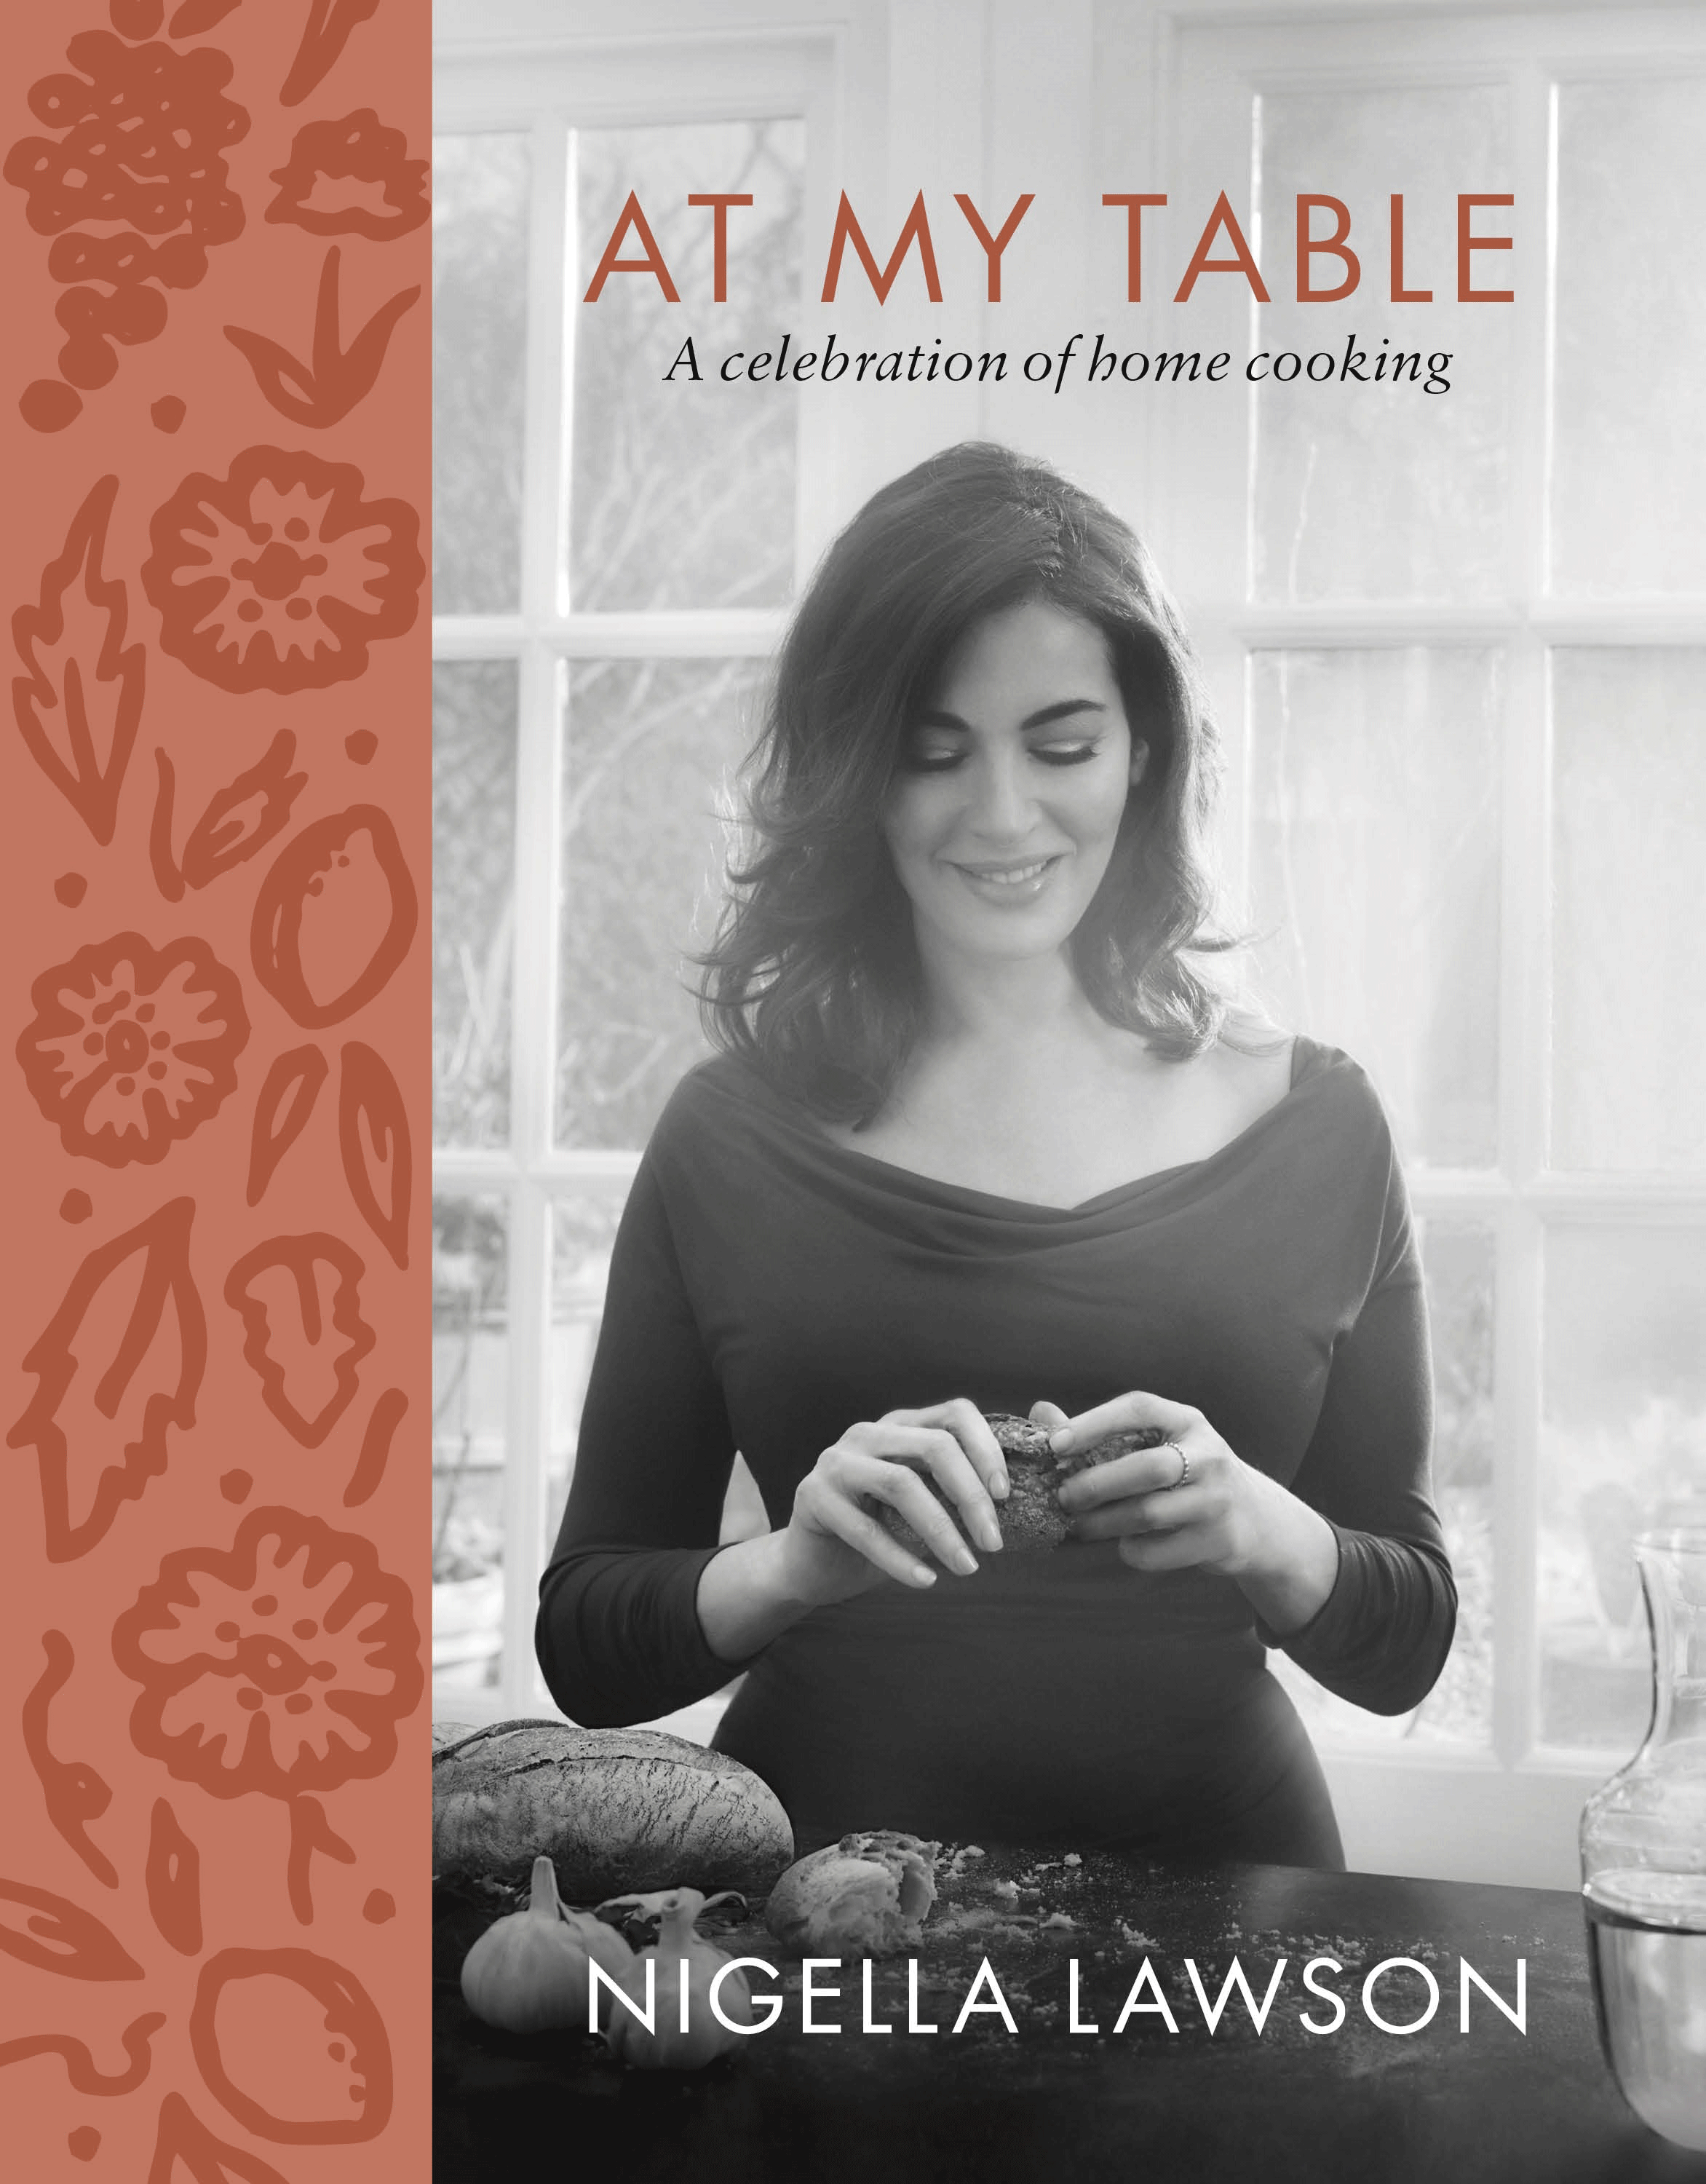 At My Table Cookbook Review